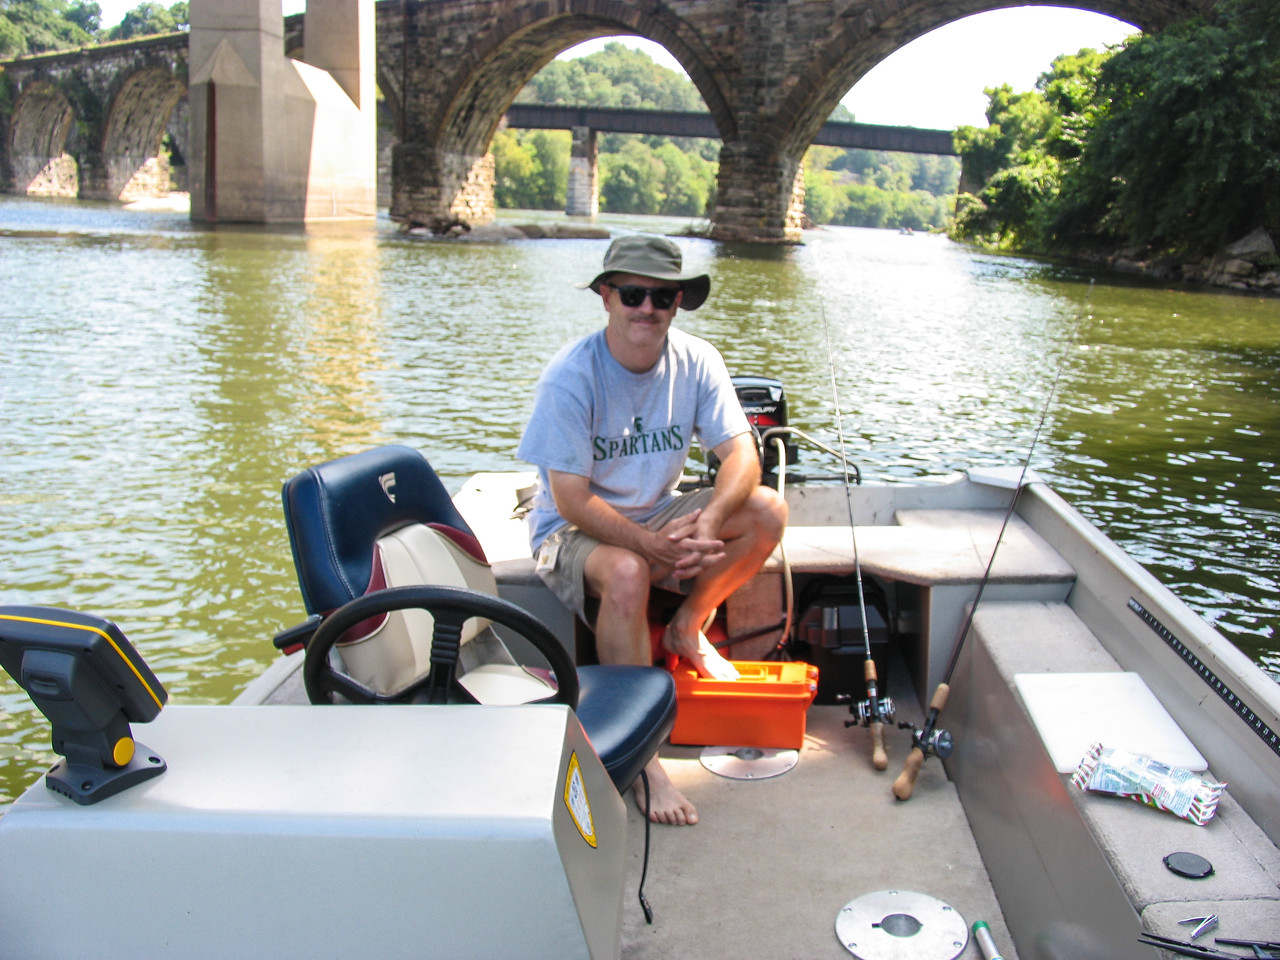 Fishing on the Schuylkill River - August 2004